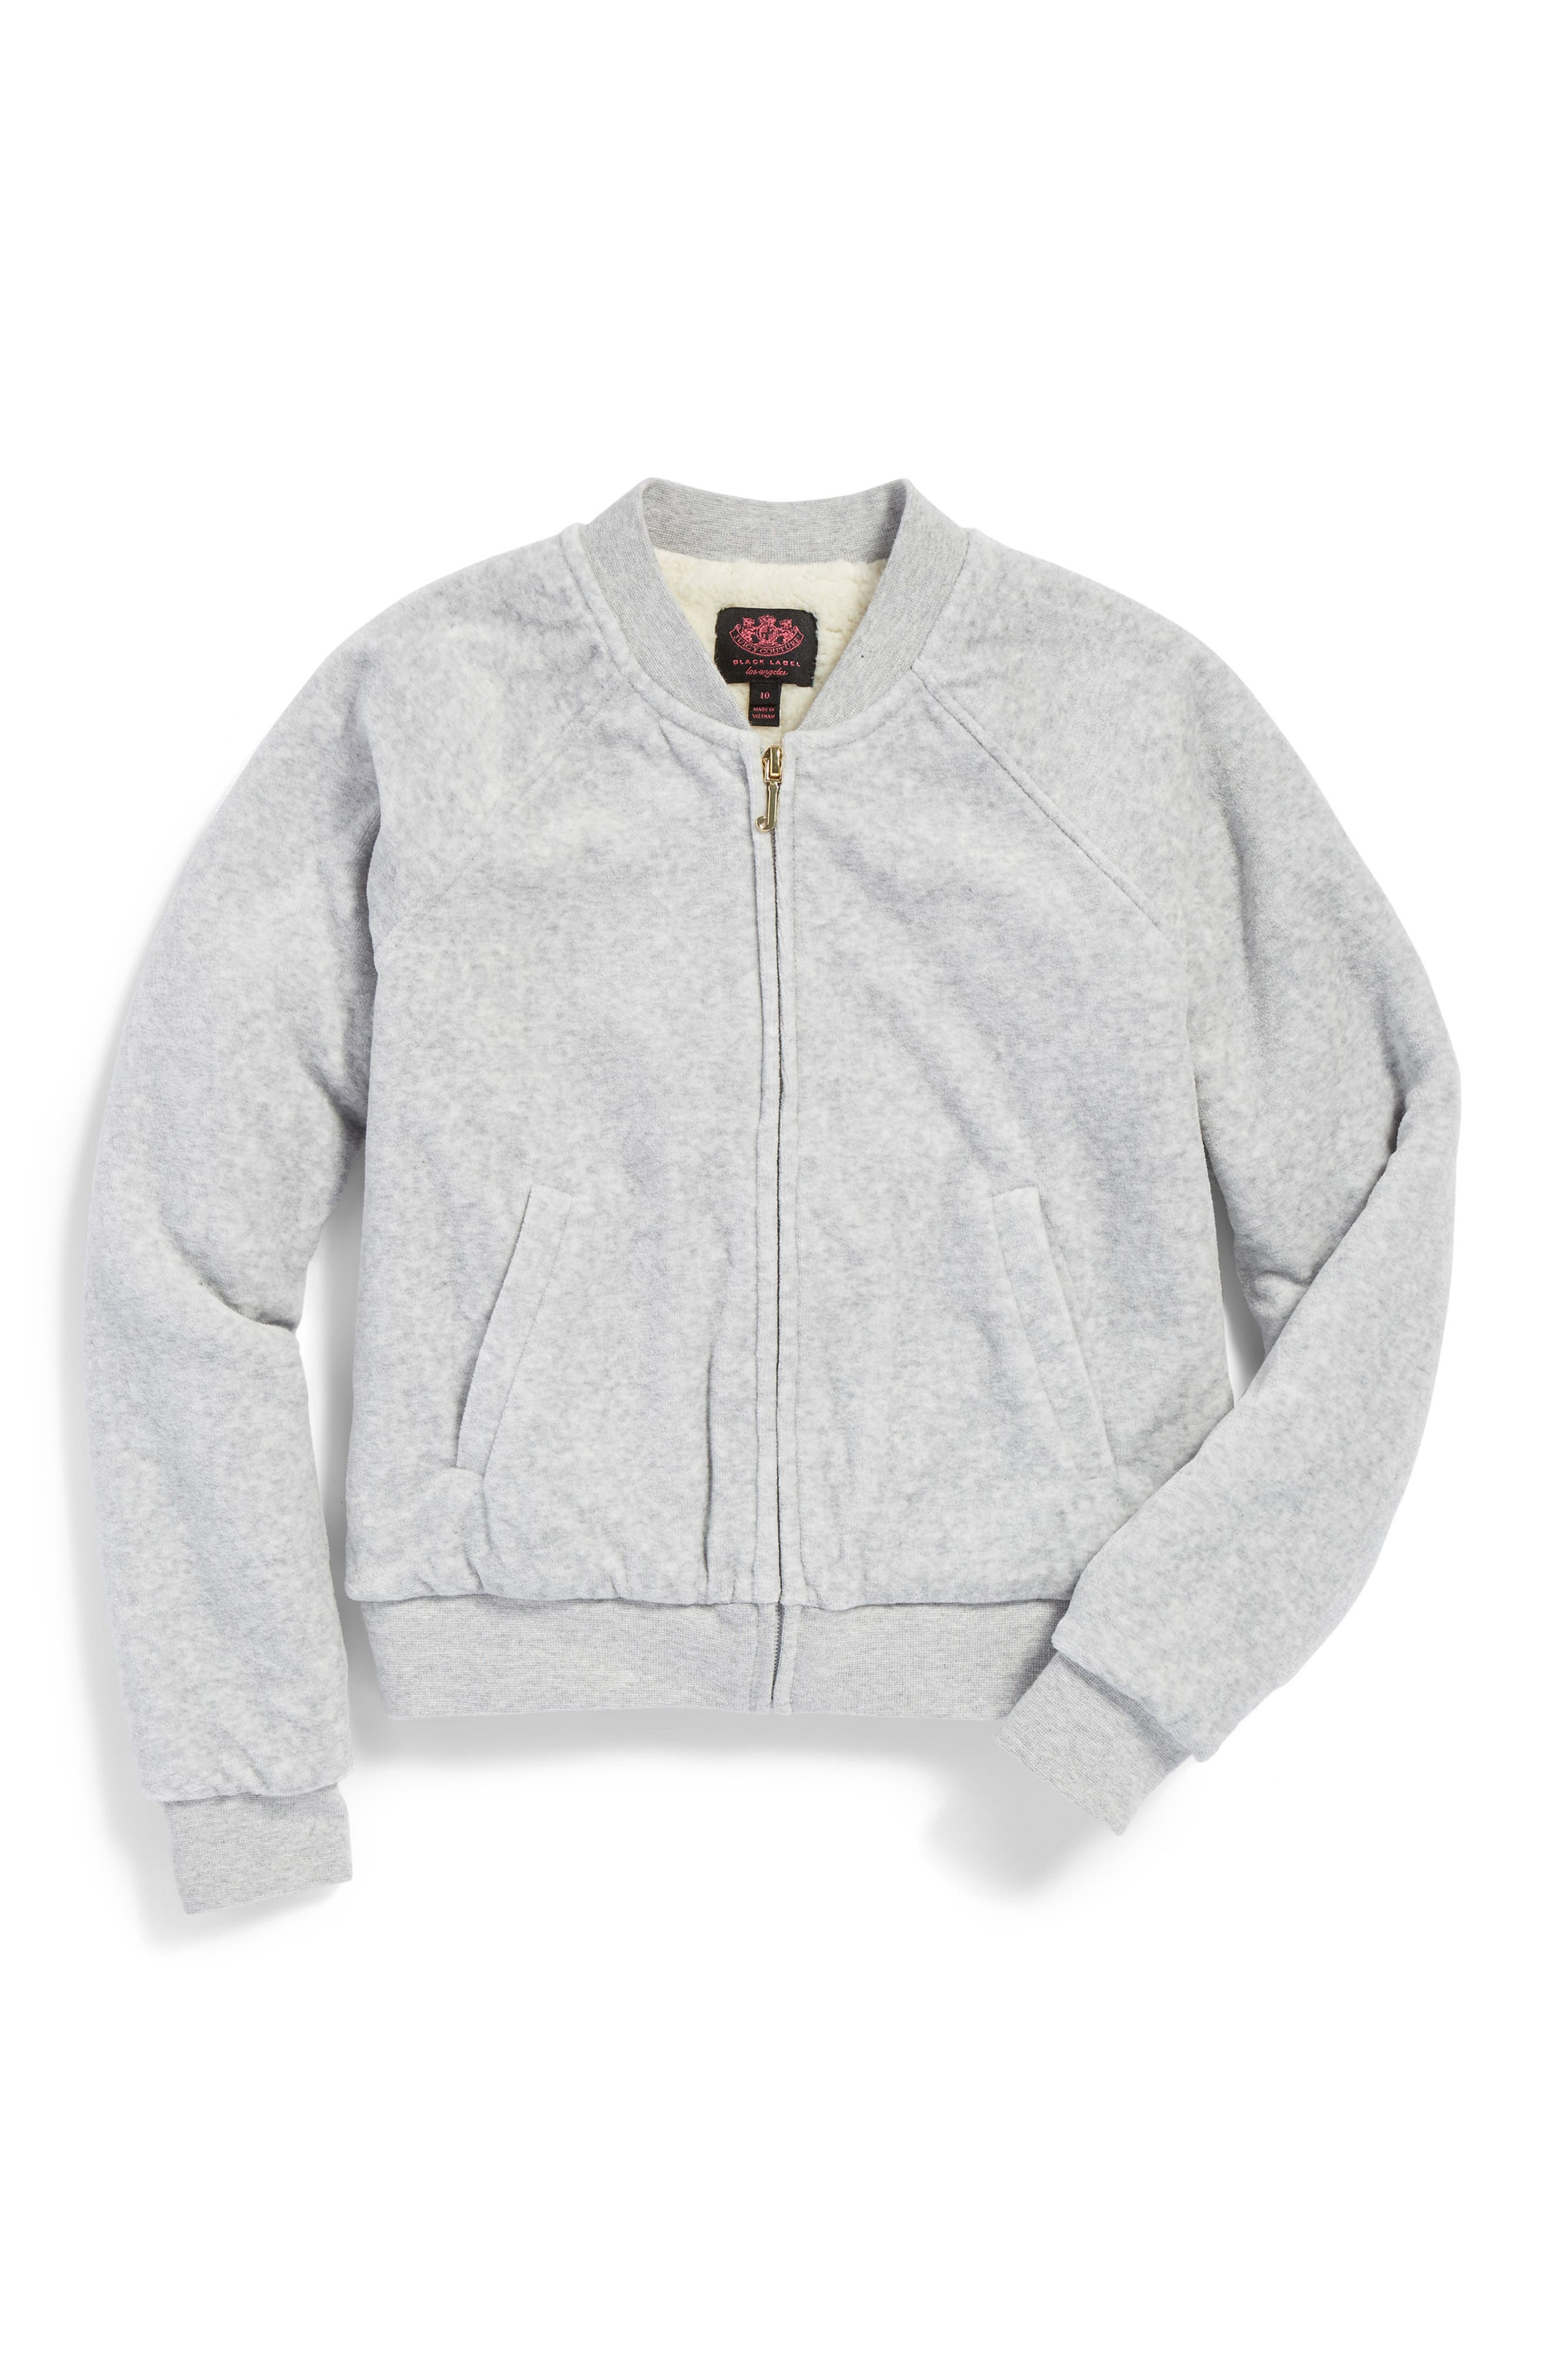 Kitty Cat Westwood Jacket,                         Main,                         color, 027